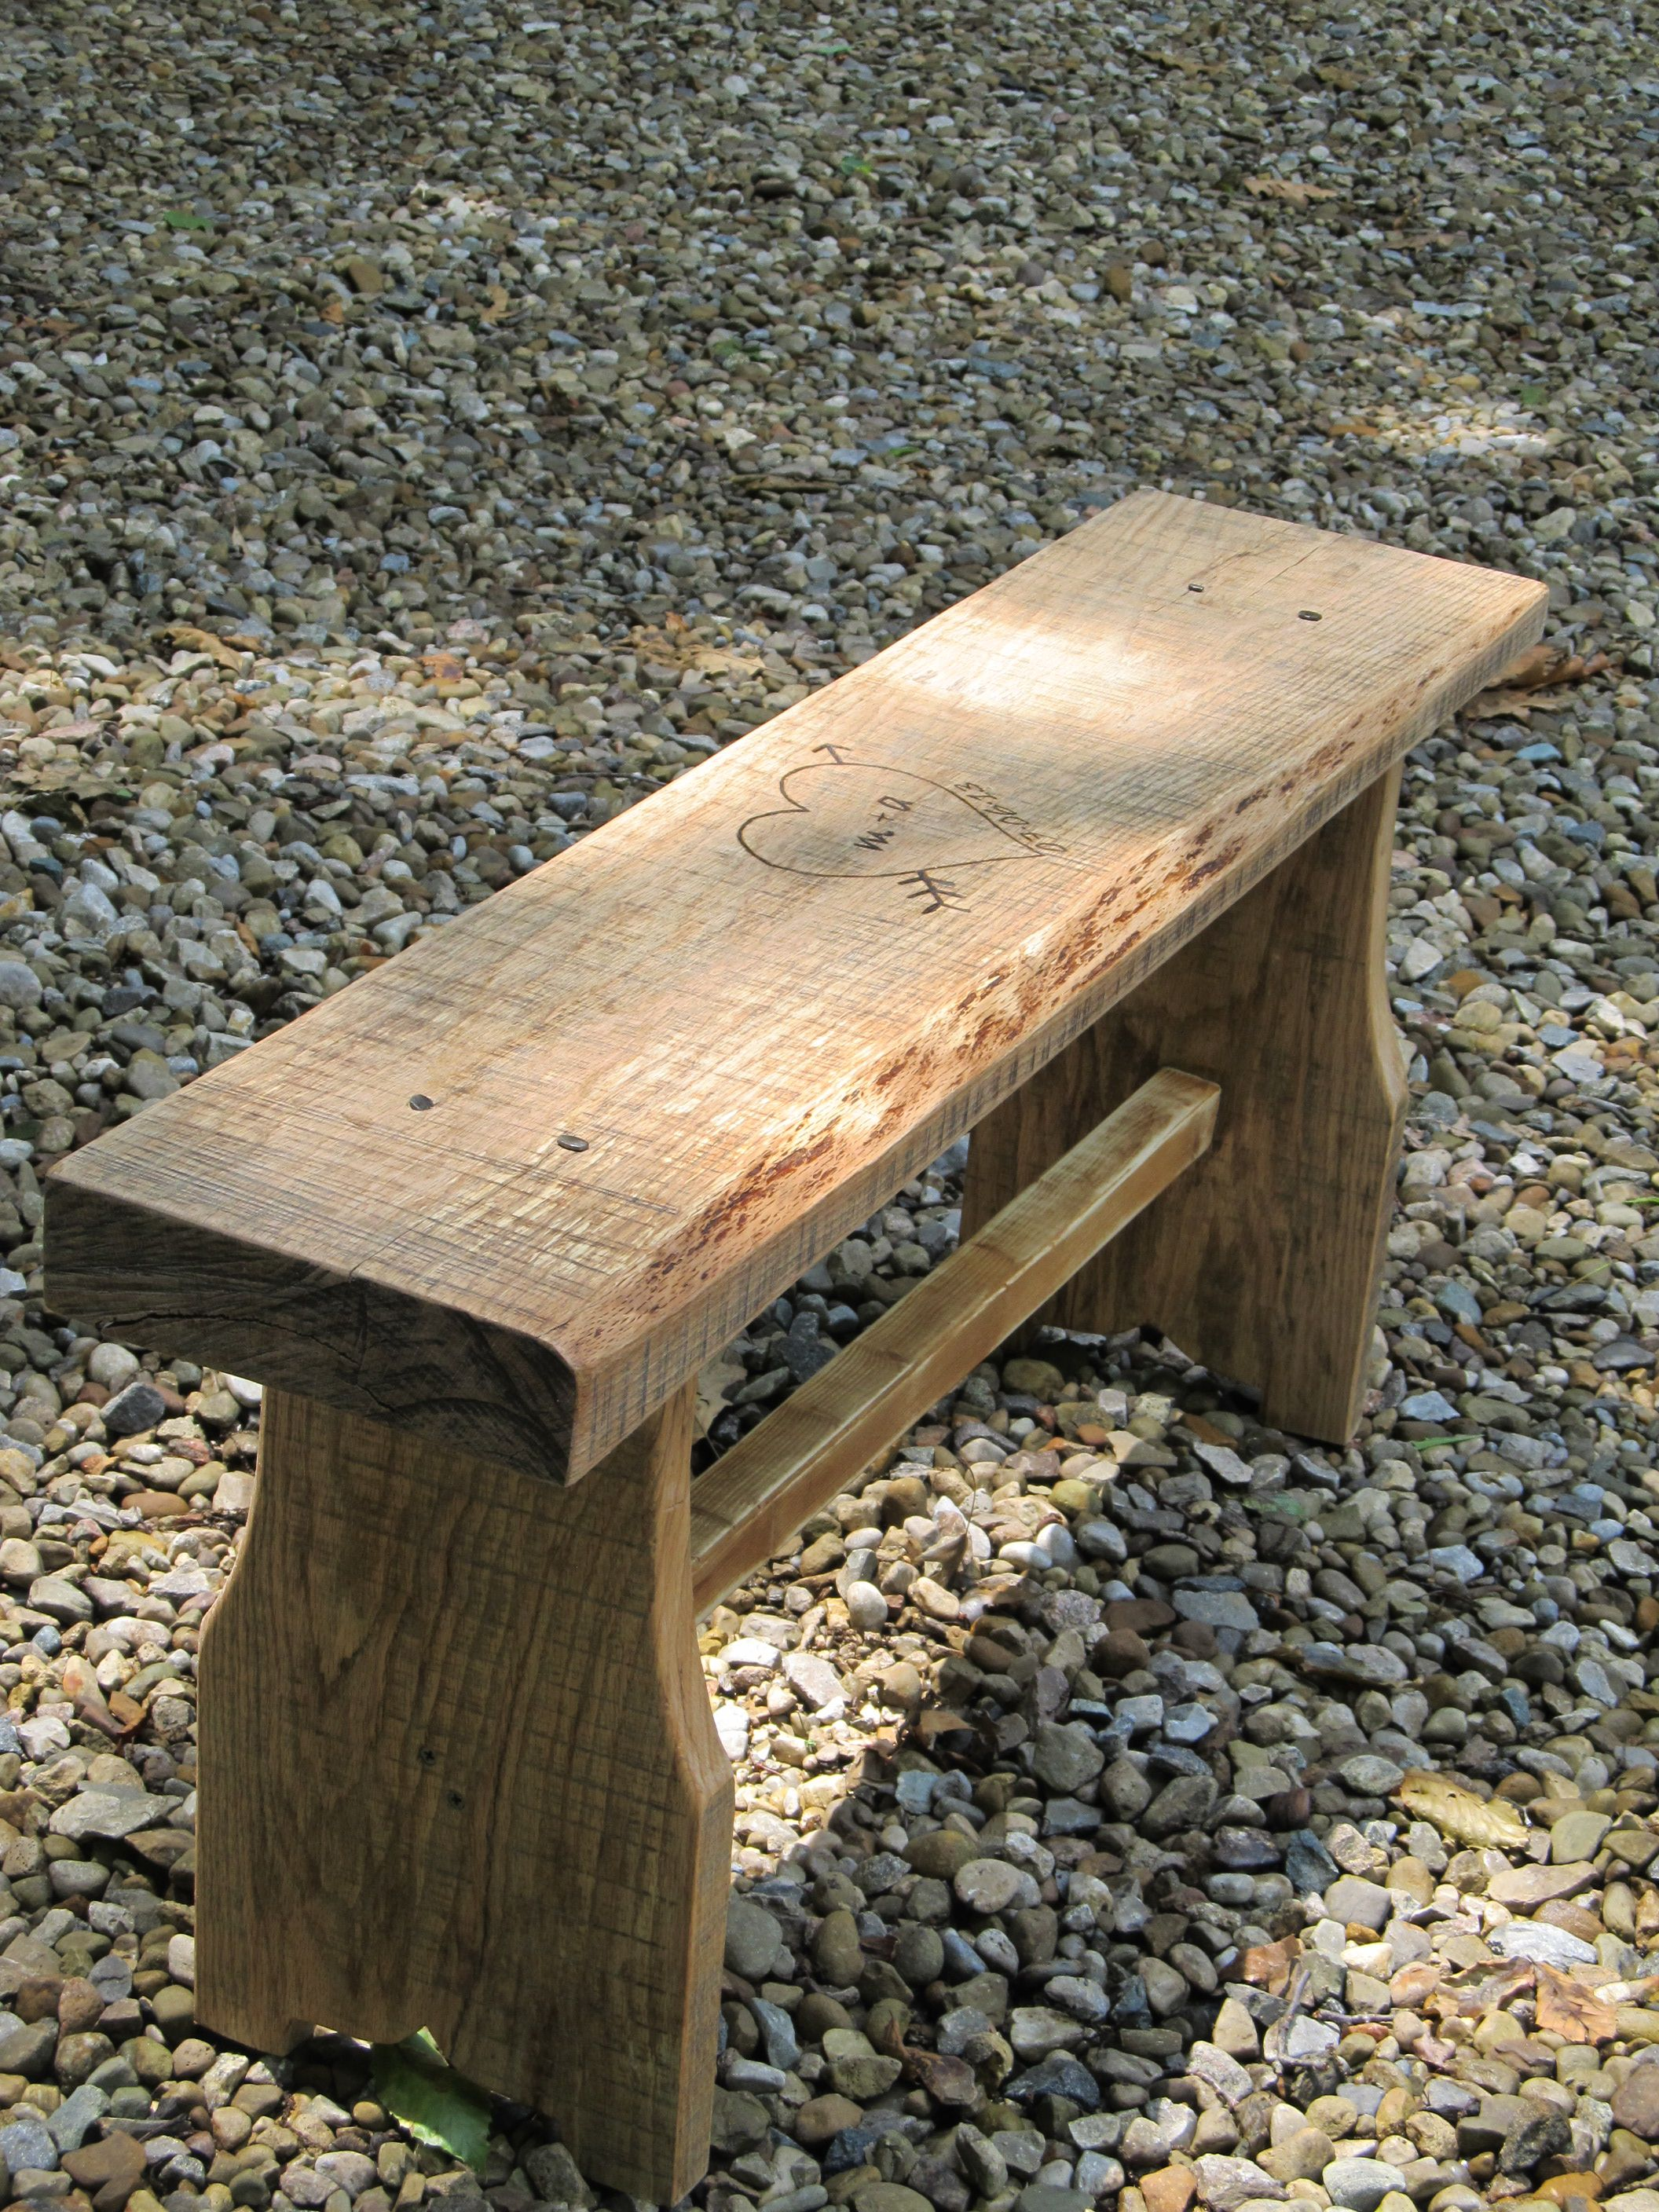 Farmhouse Bench Woodworking Plans Woodshop Plans - Build yourself a one board bench with an 8 2x10 or mabey use that easy diy projectswood